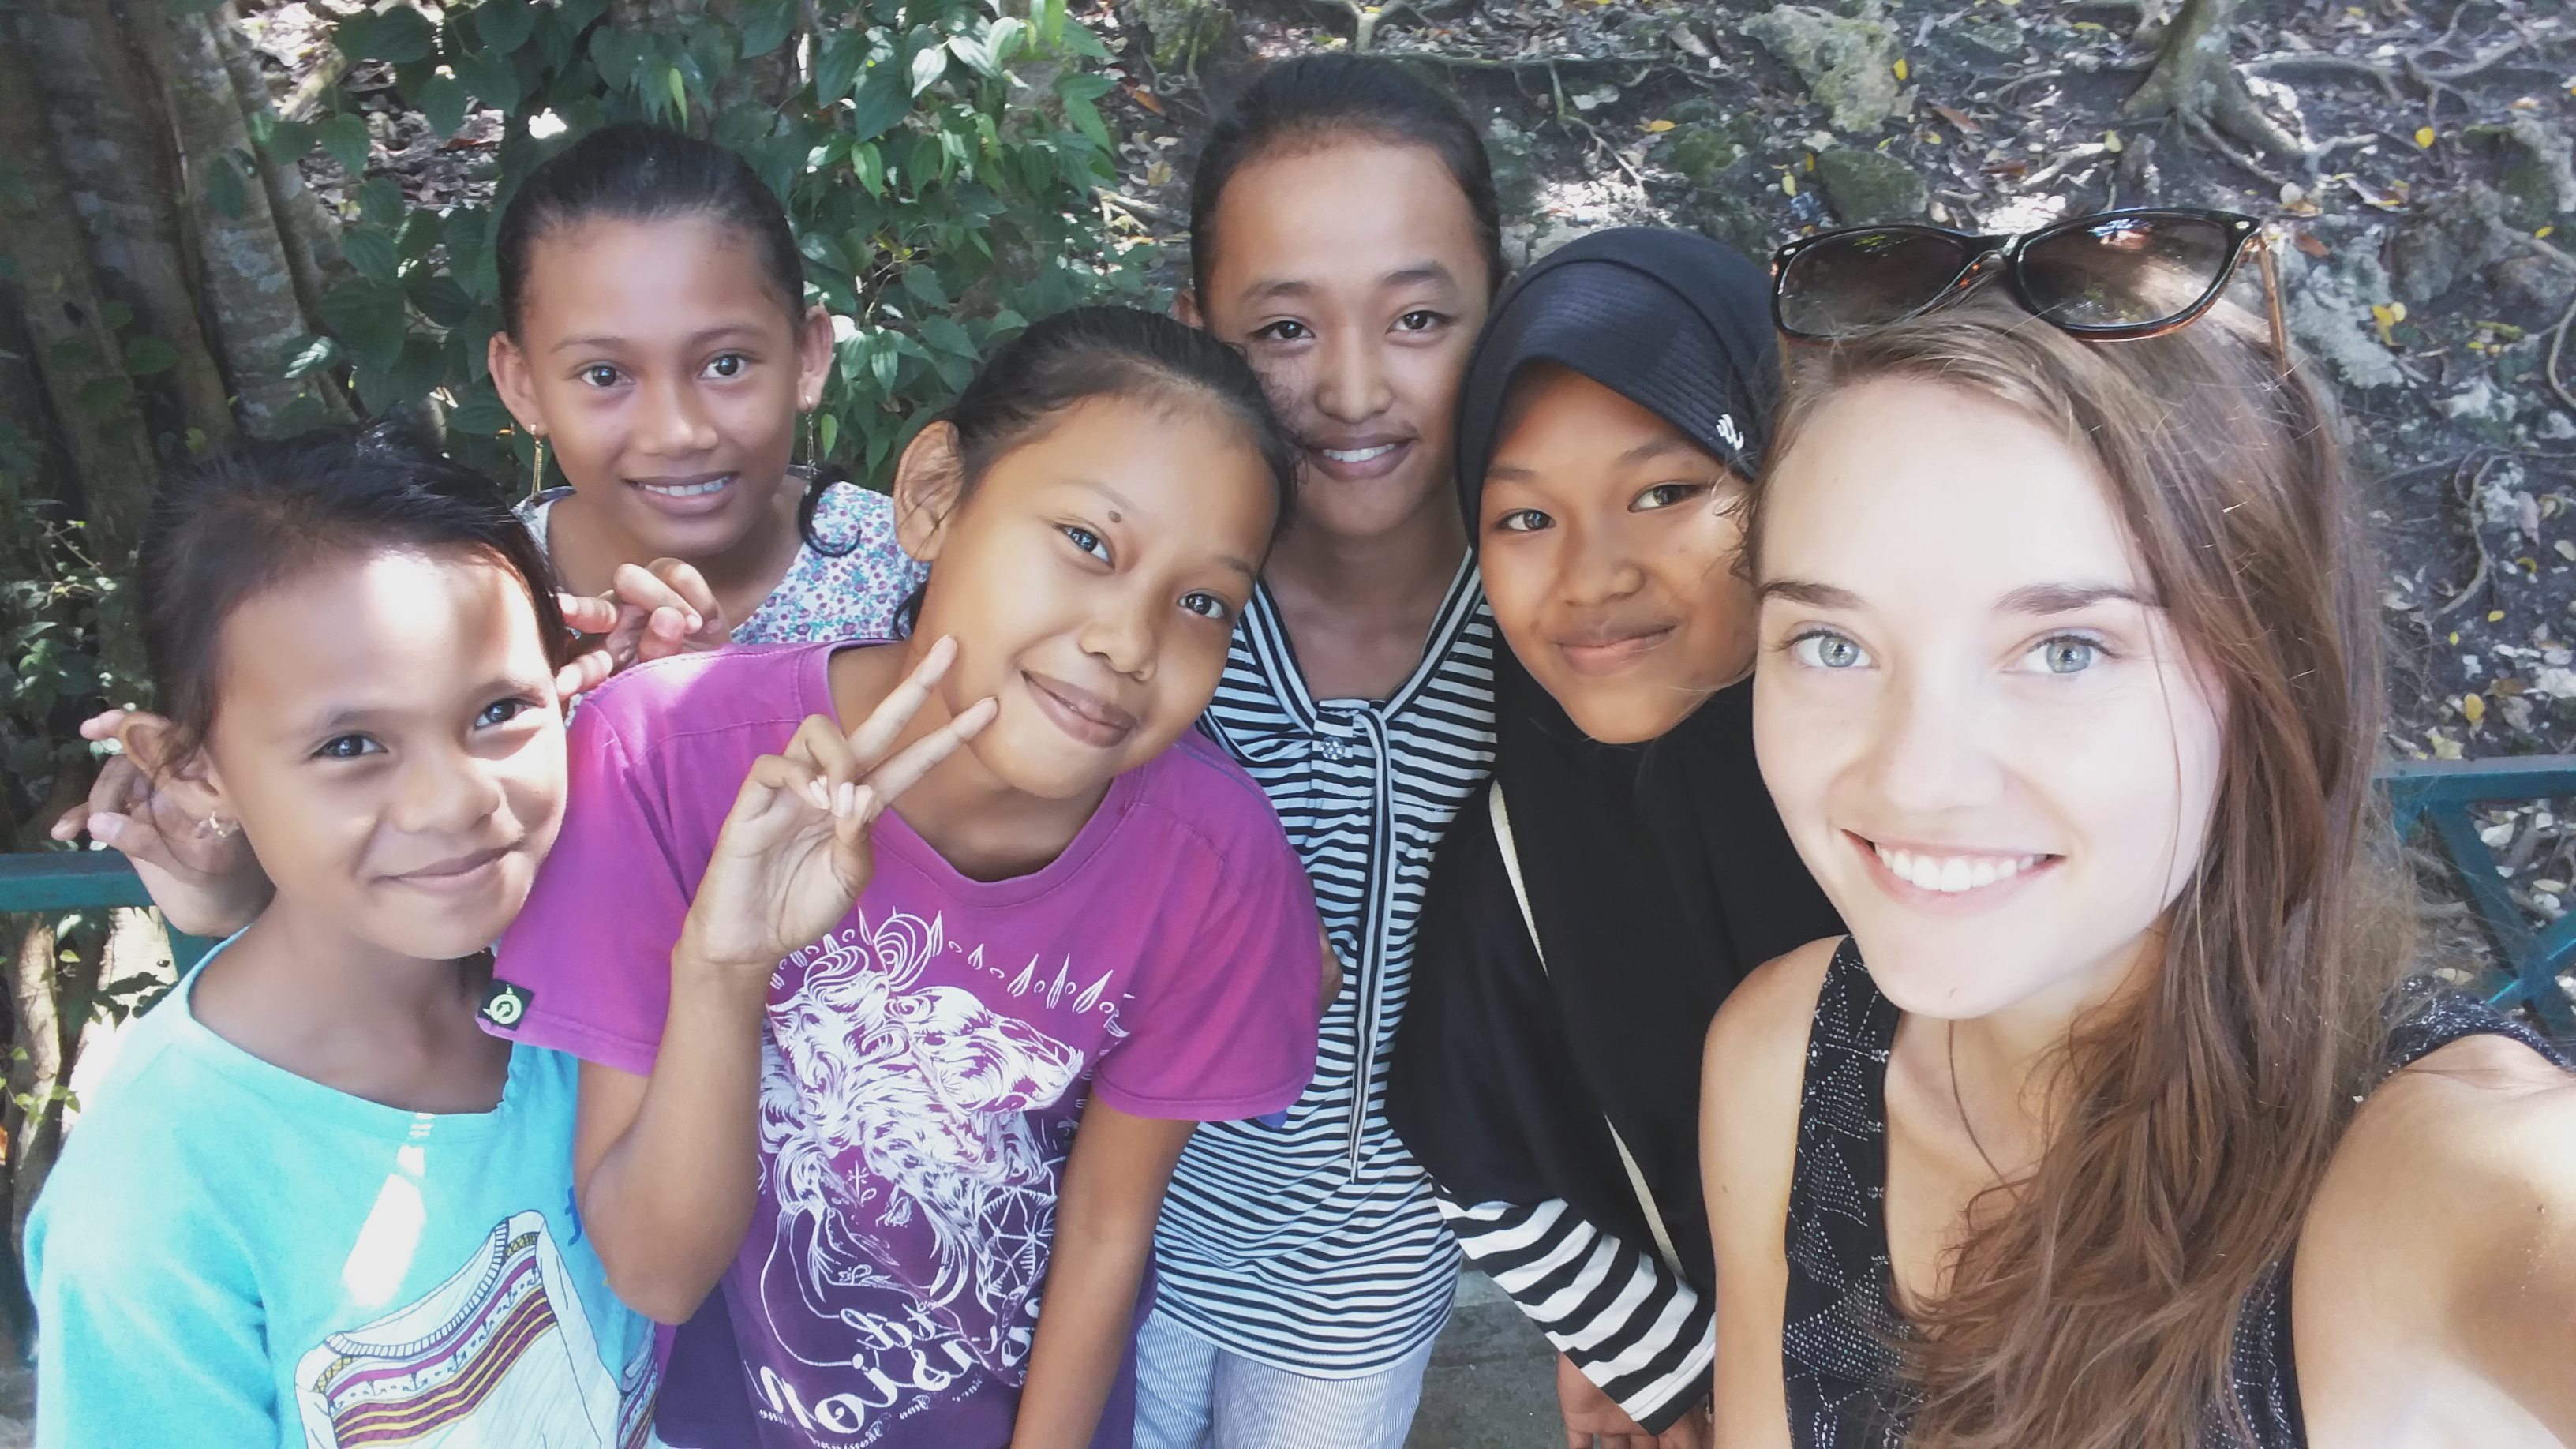 Indonesia, Ampana- local girls that asked to take a photo